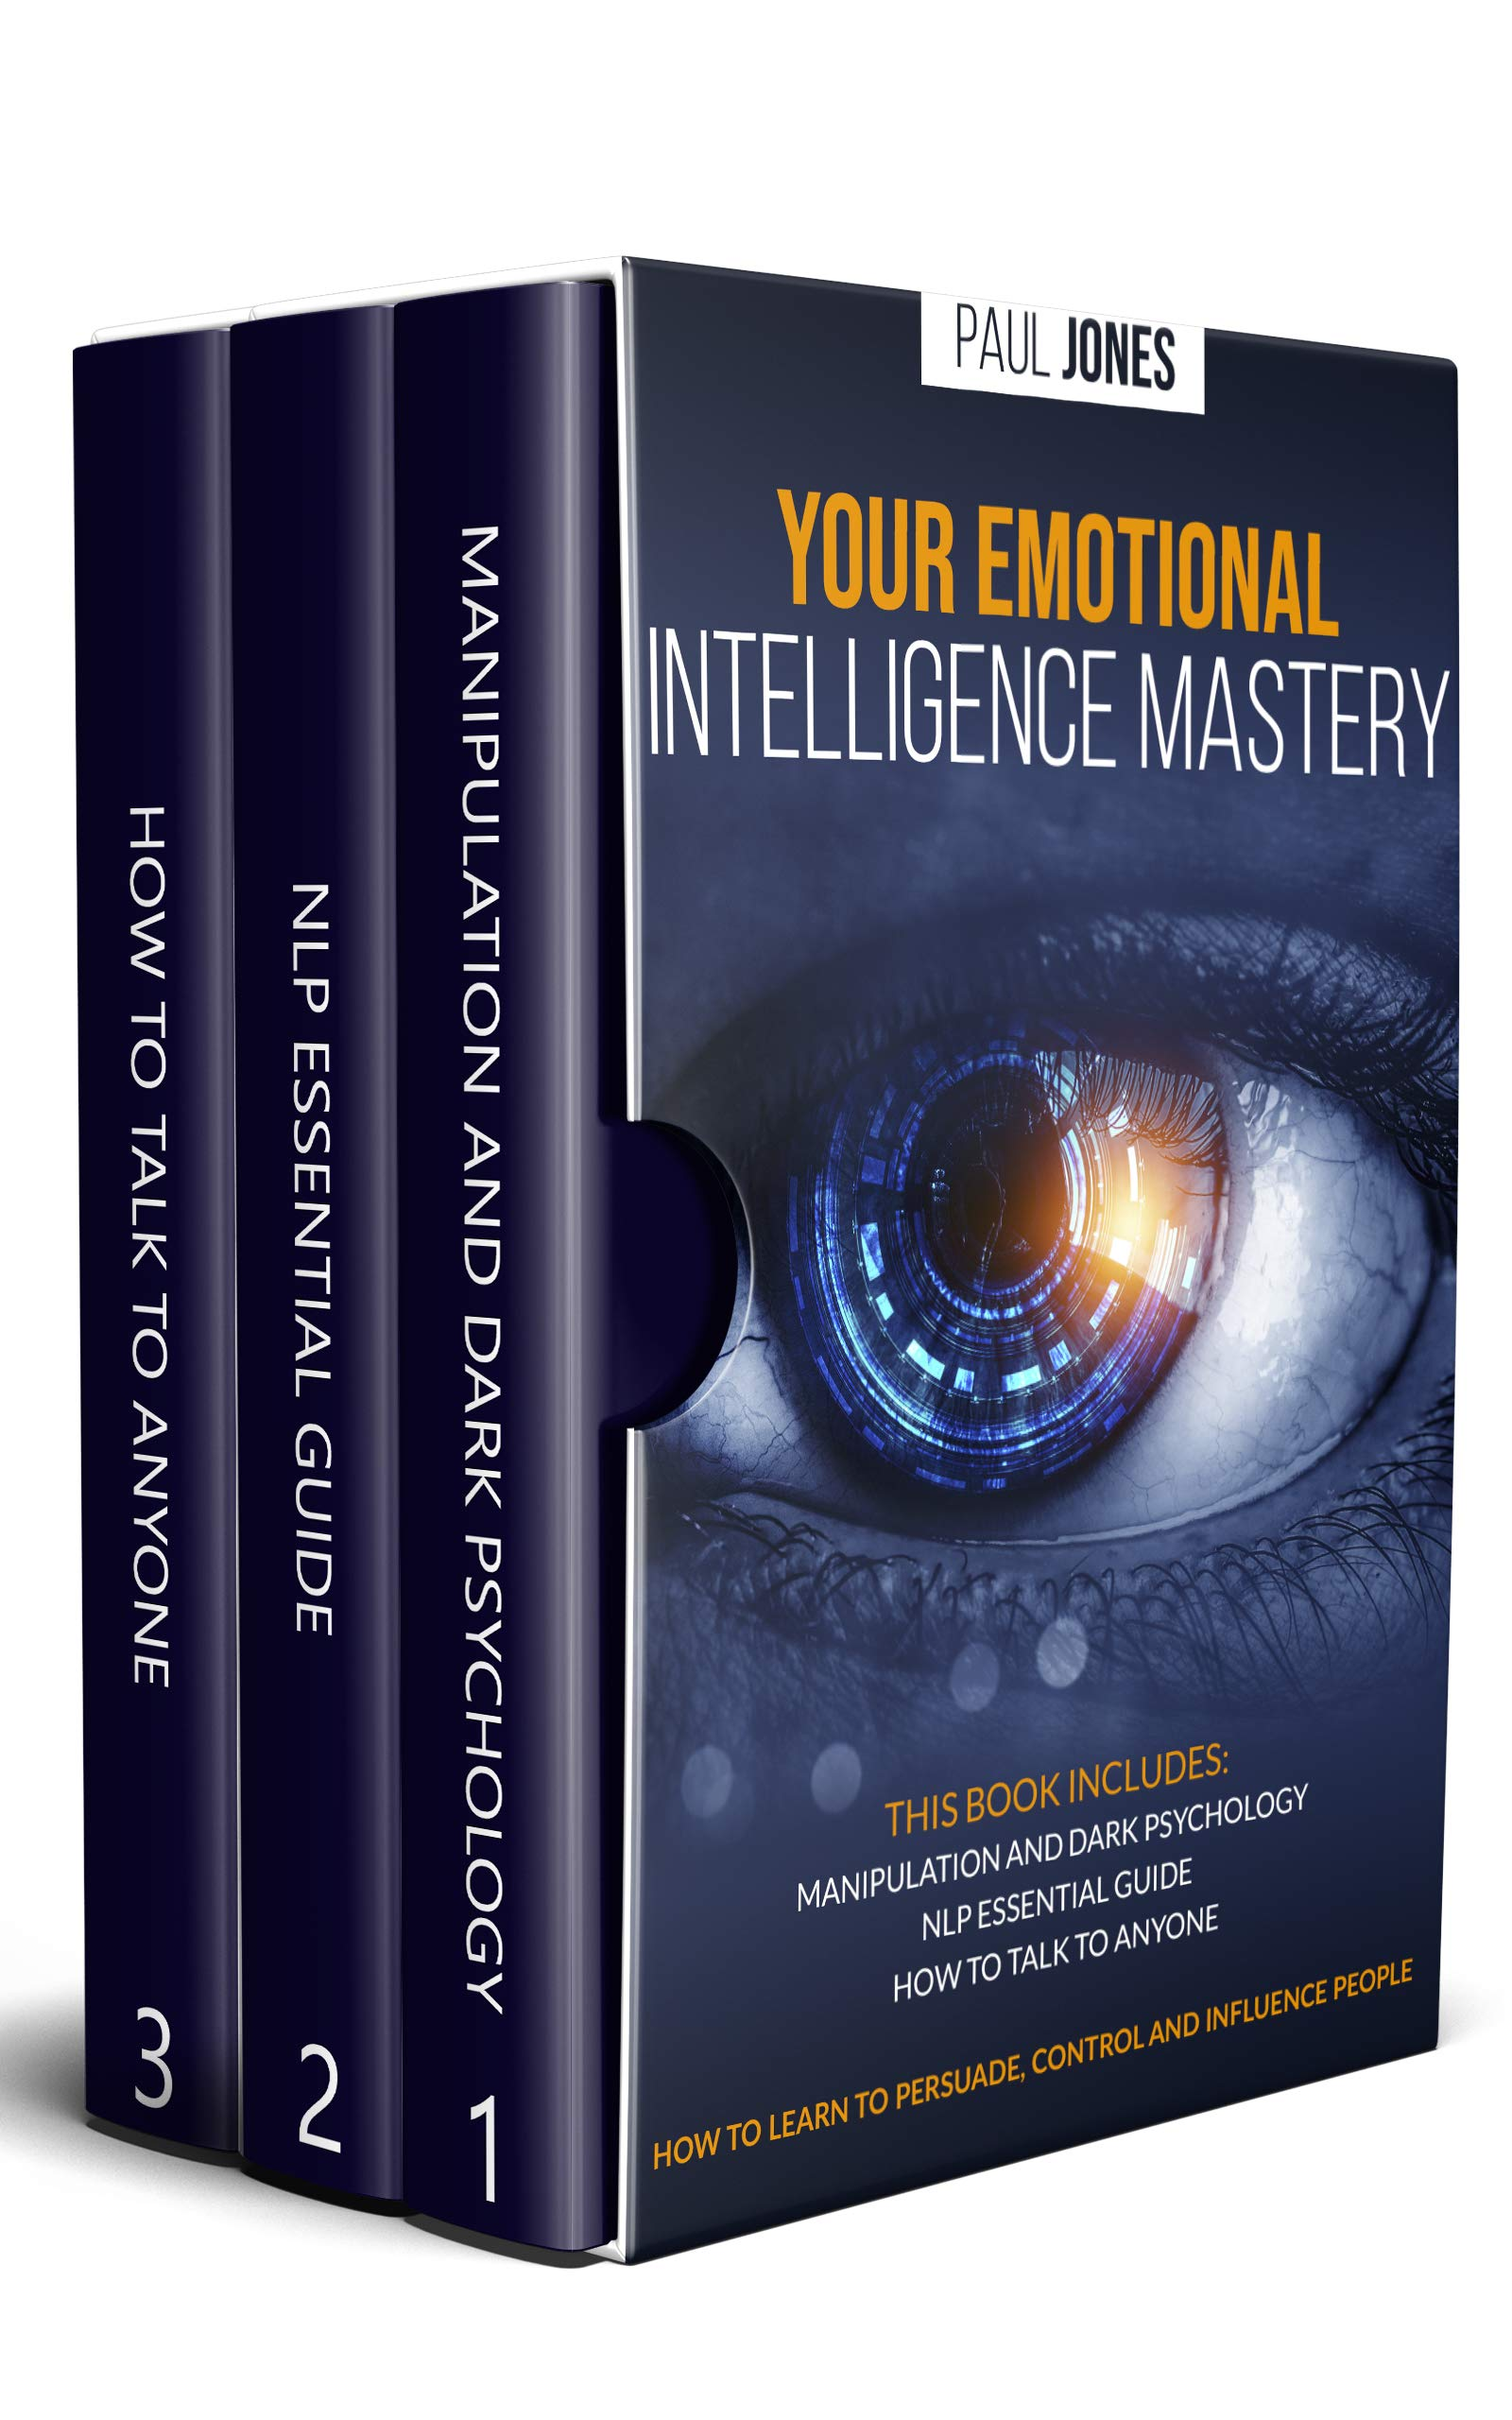 Your Emotional Intelligence Mastery: Manipulation And Dark Psychology, NLP Essential Guide, How To Talk To Anyone. How To ...